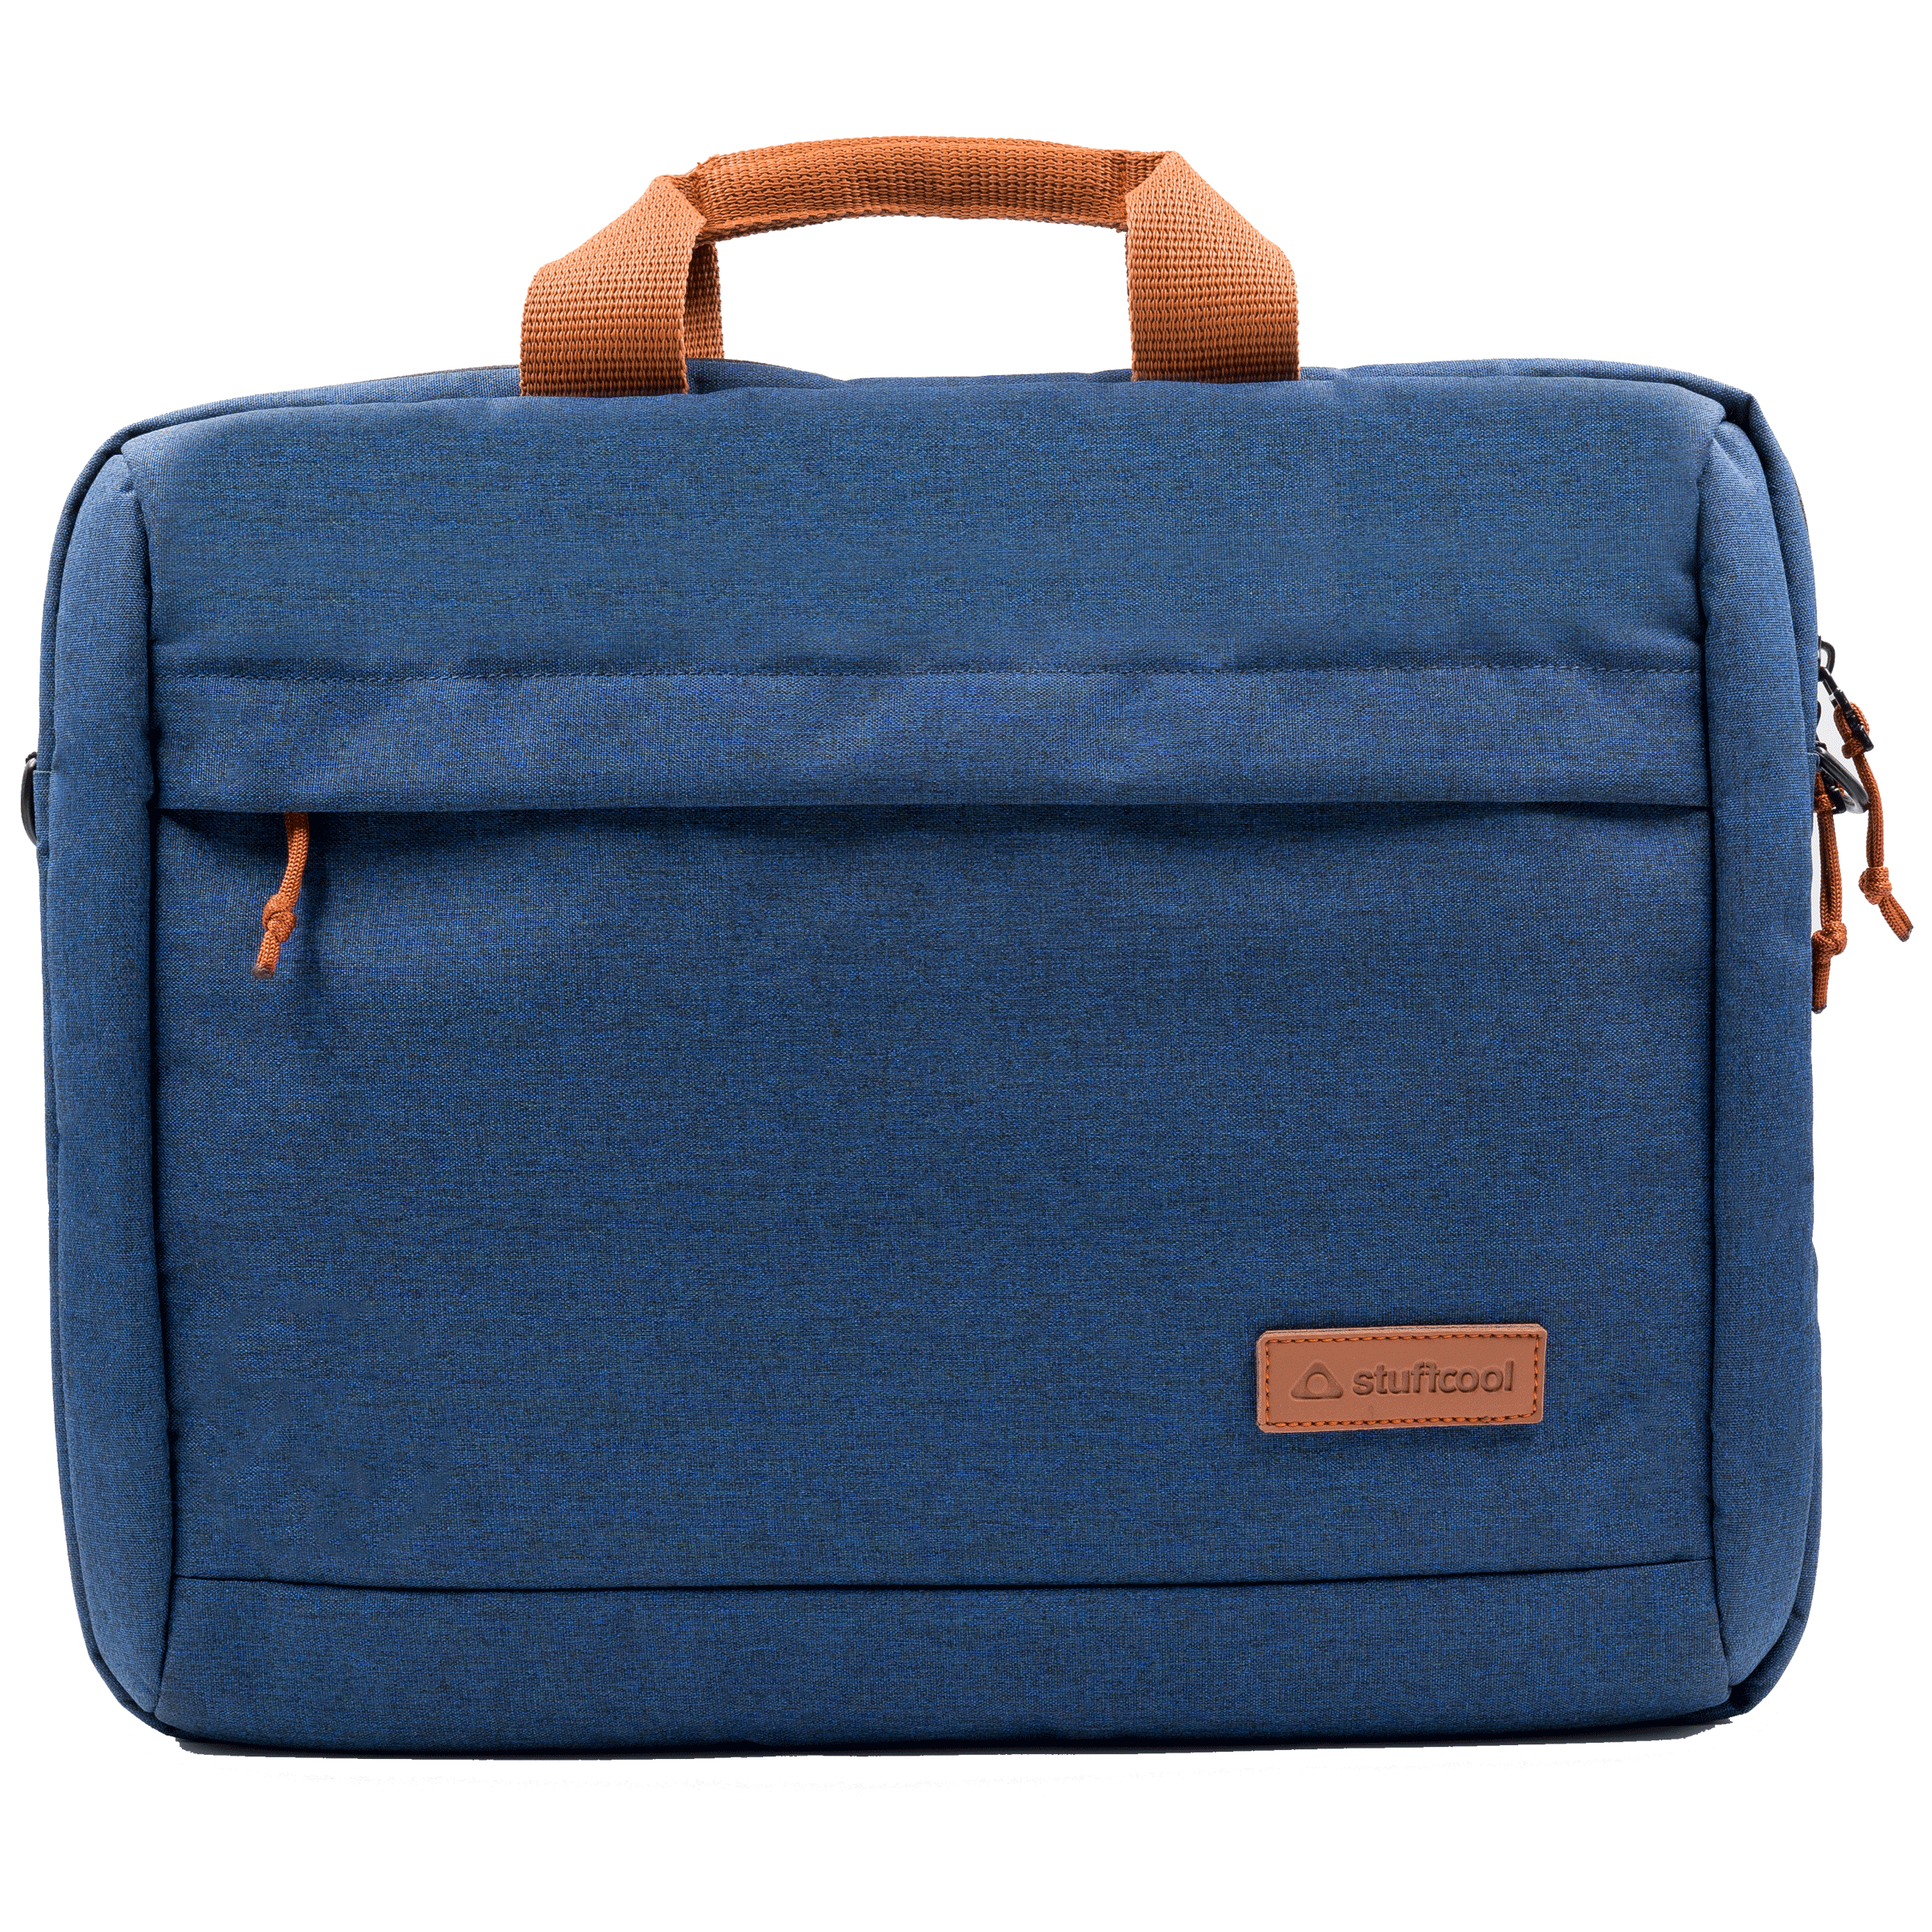 Stuffcool Magnus 29 Litres Heathered Texture Polyester Fabric Sling Bag for 15.4 Inches Laptops and 16 Inches Macbook (Detachable Shoulder Strap, MGSLBG154-DBLU, Blue)_1